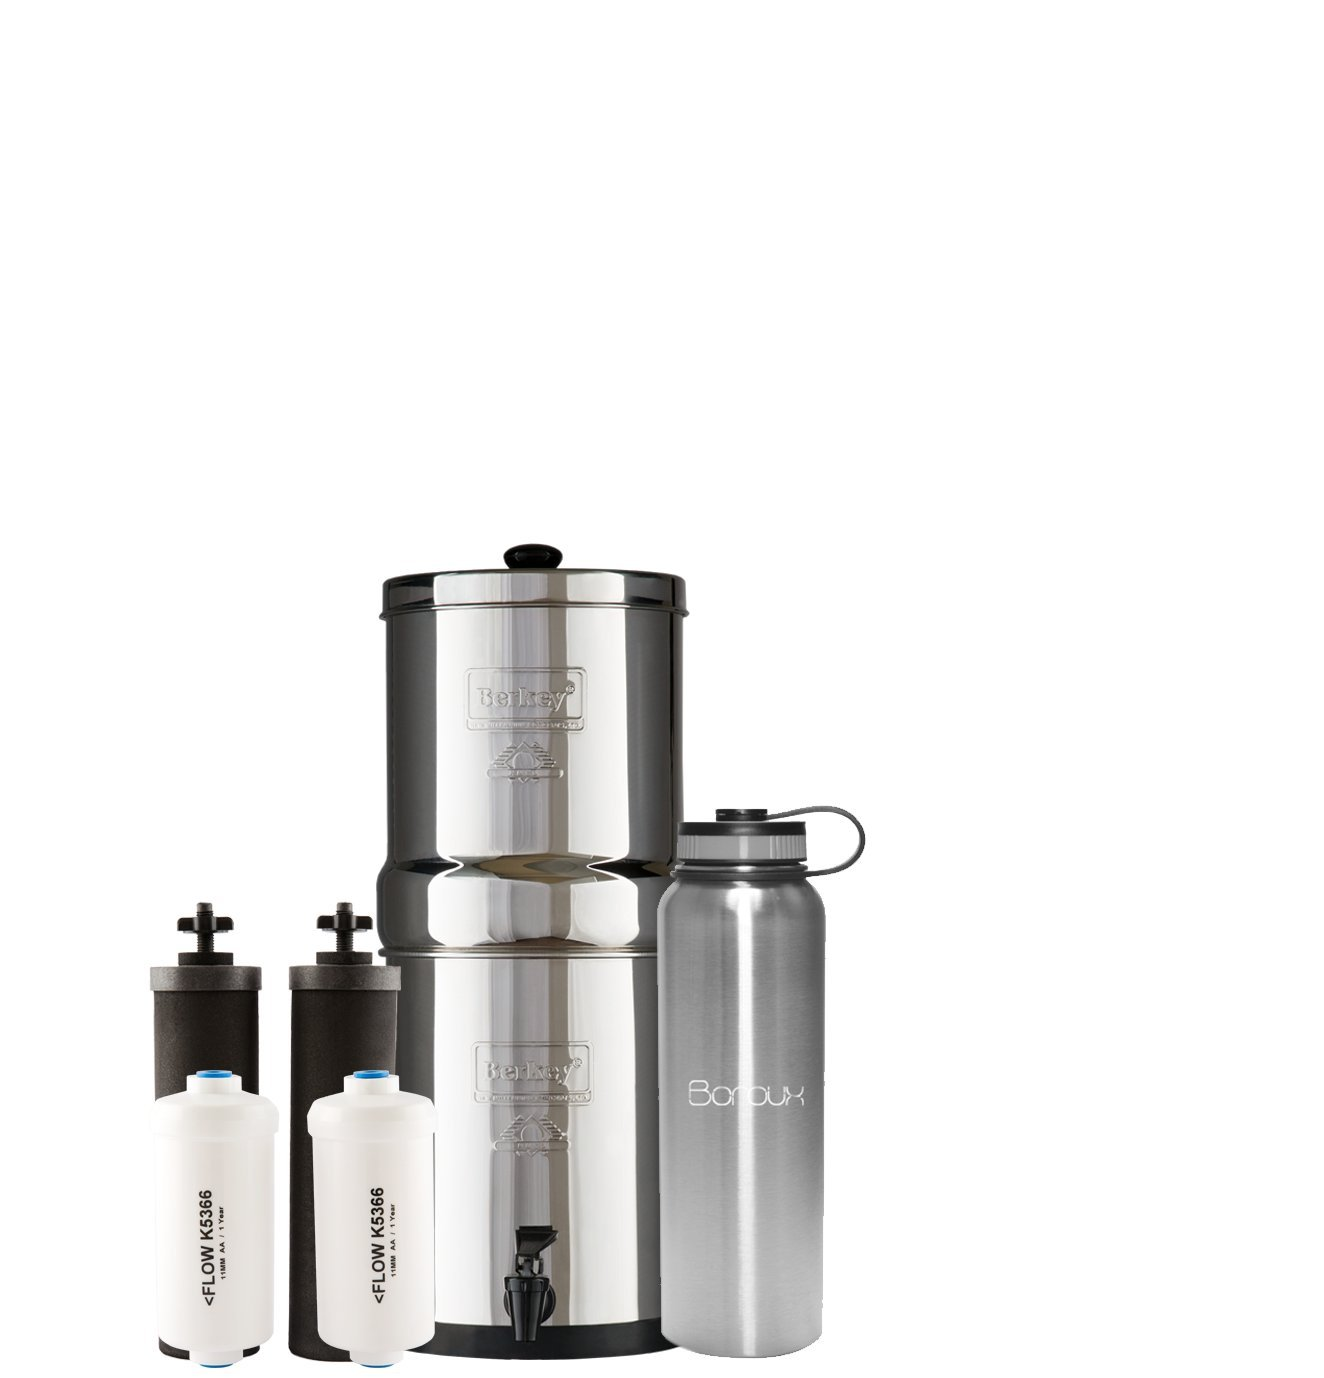 Boroux Bundle Travel Berkey Water Filter System includes Black Filters and Fluoride Filters (1.5 Gallon) bundled with 40 oz Stainless Steel Double Wall Bottle